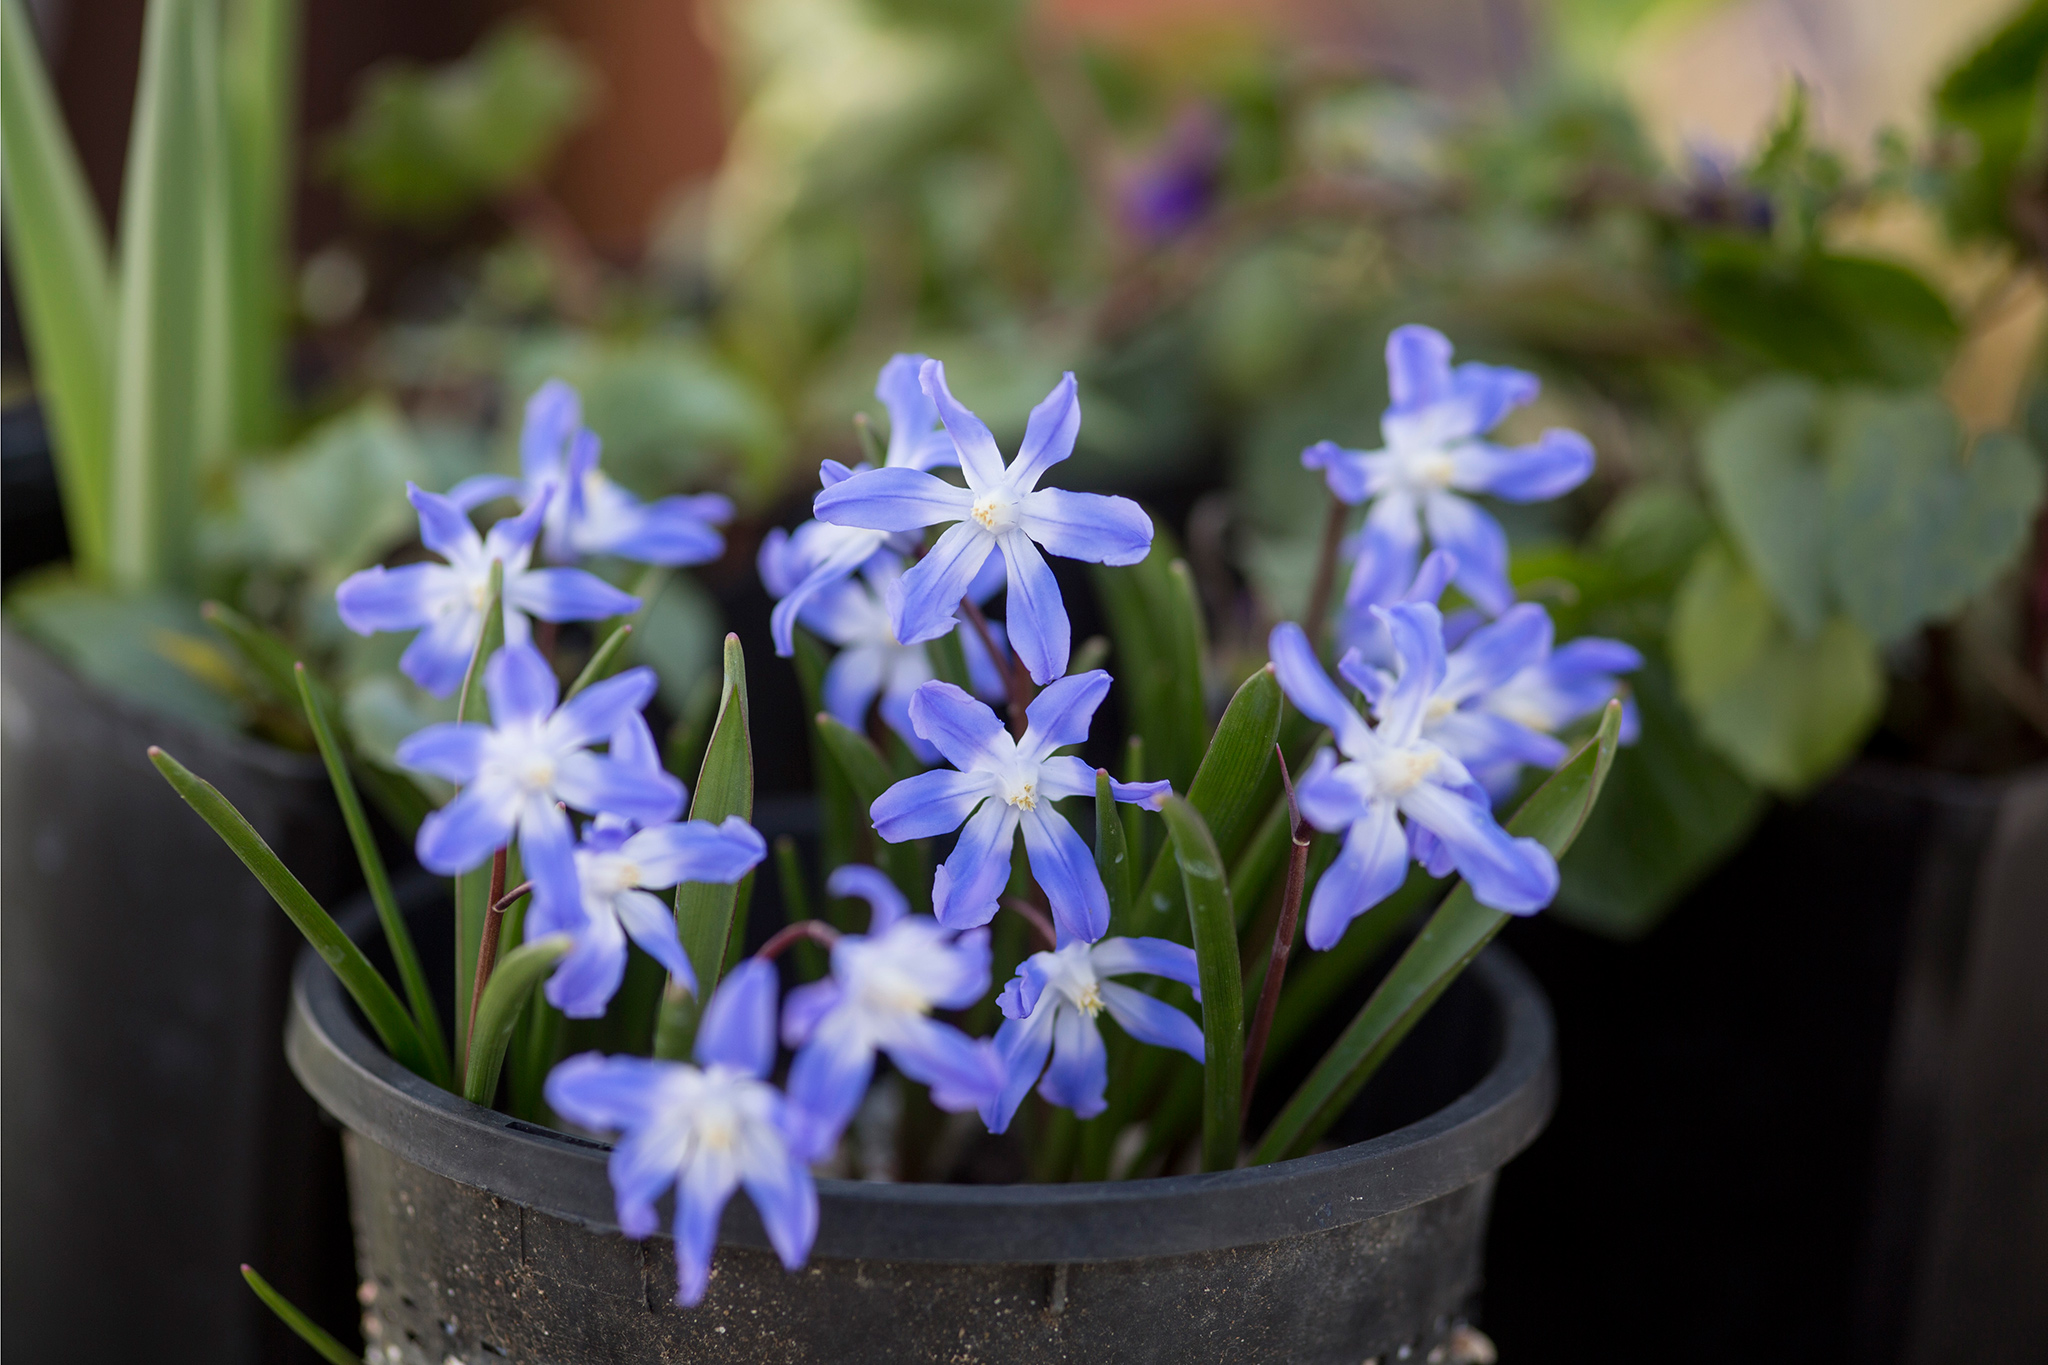 Five bulbs for march flowers gardenersworld the dainty star shaped flowers of chionodoxa bulbs like pink giant look the most impactful when planted in large drifts as youd see with other mightylinksfo